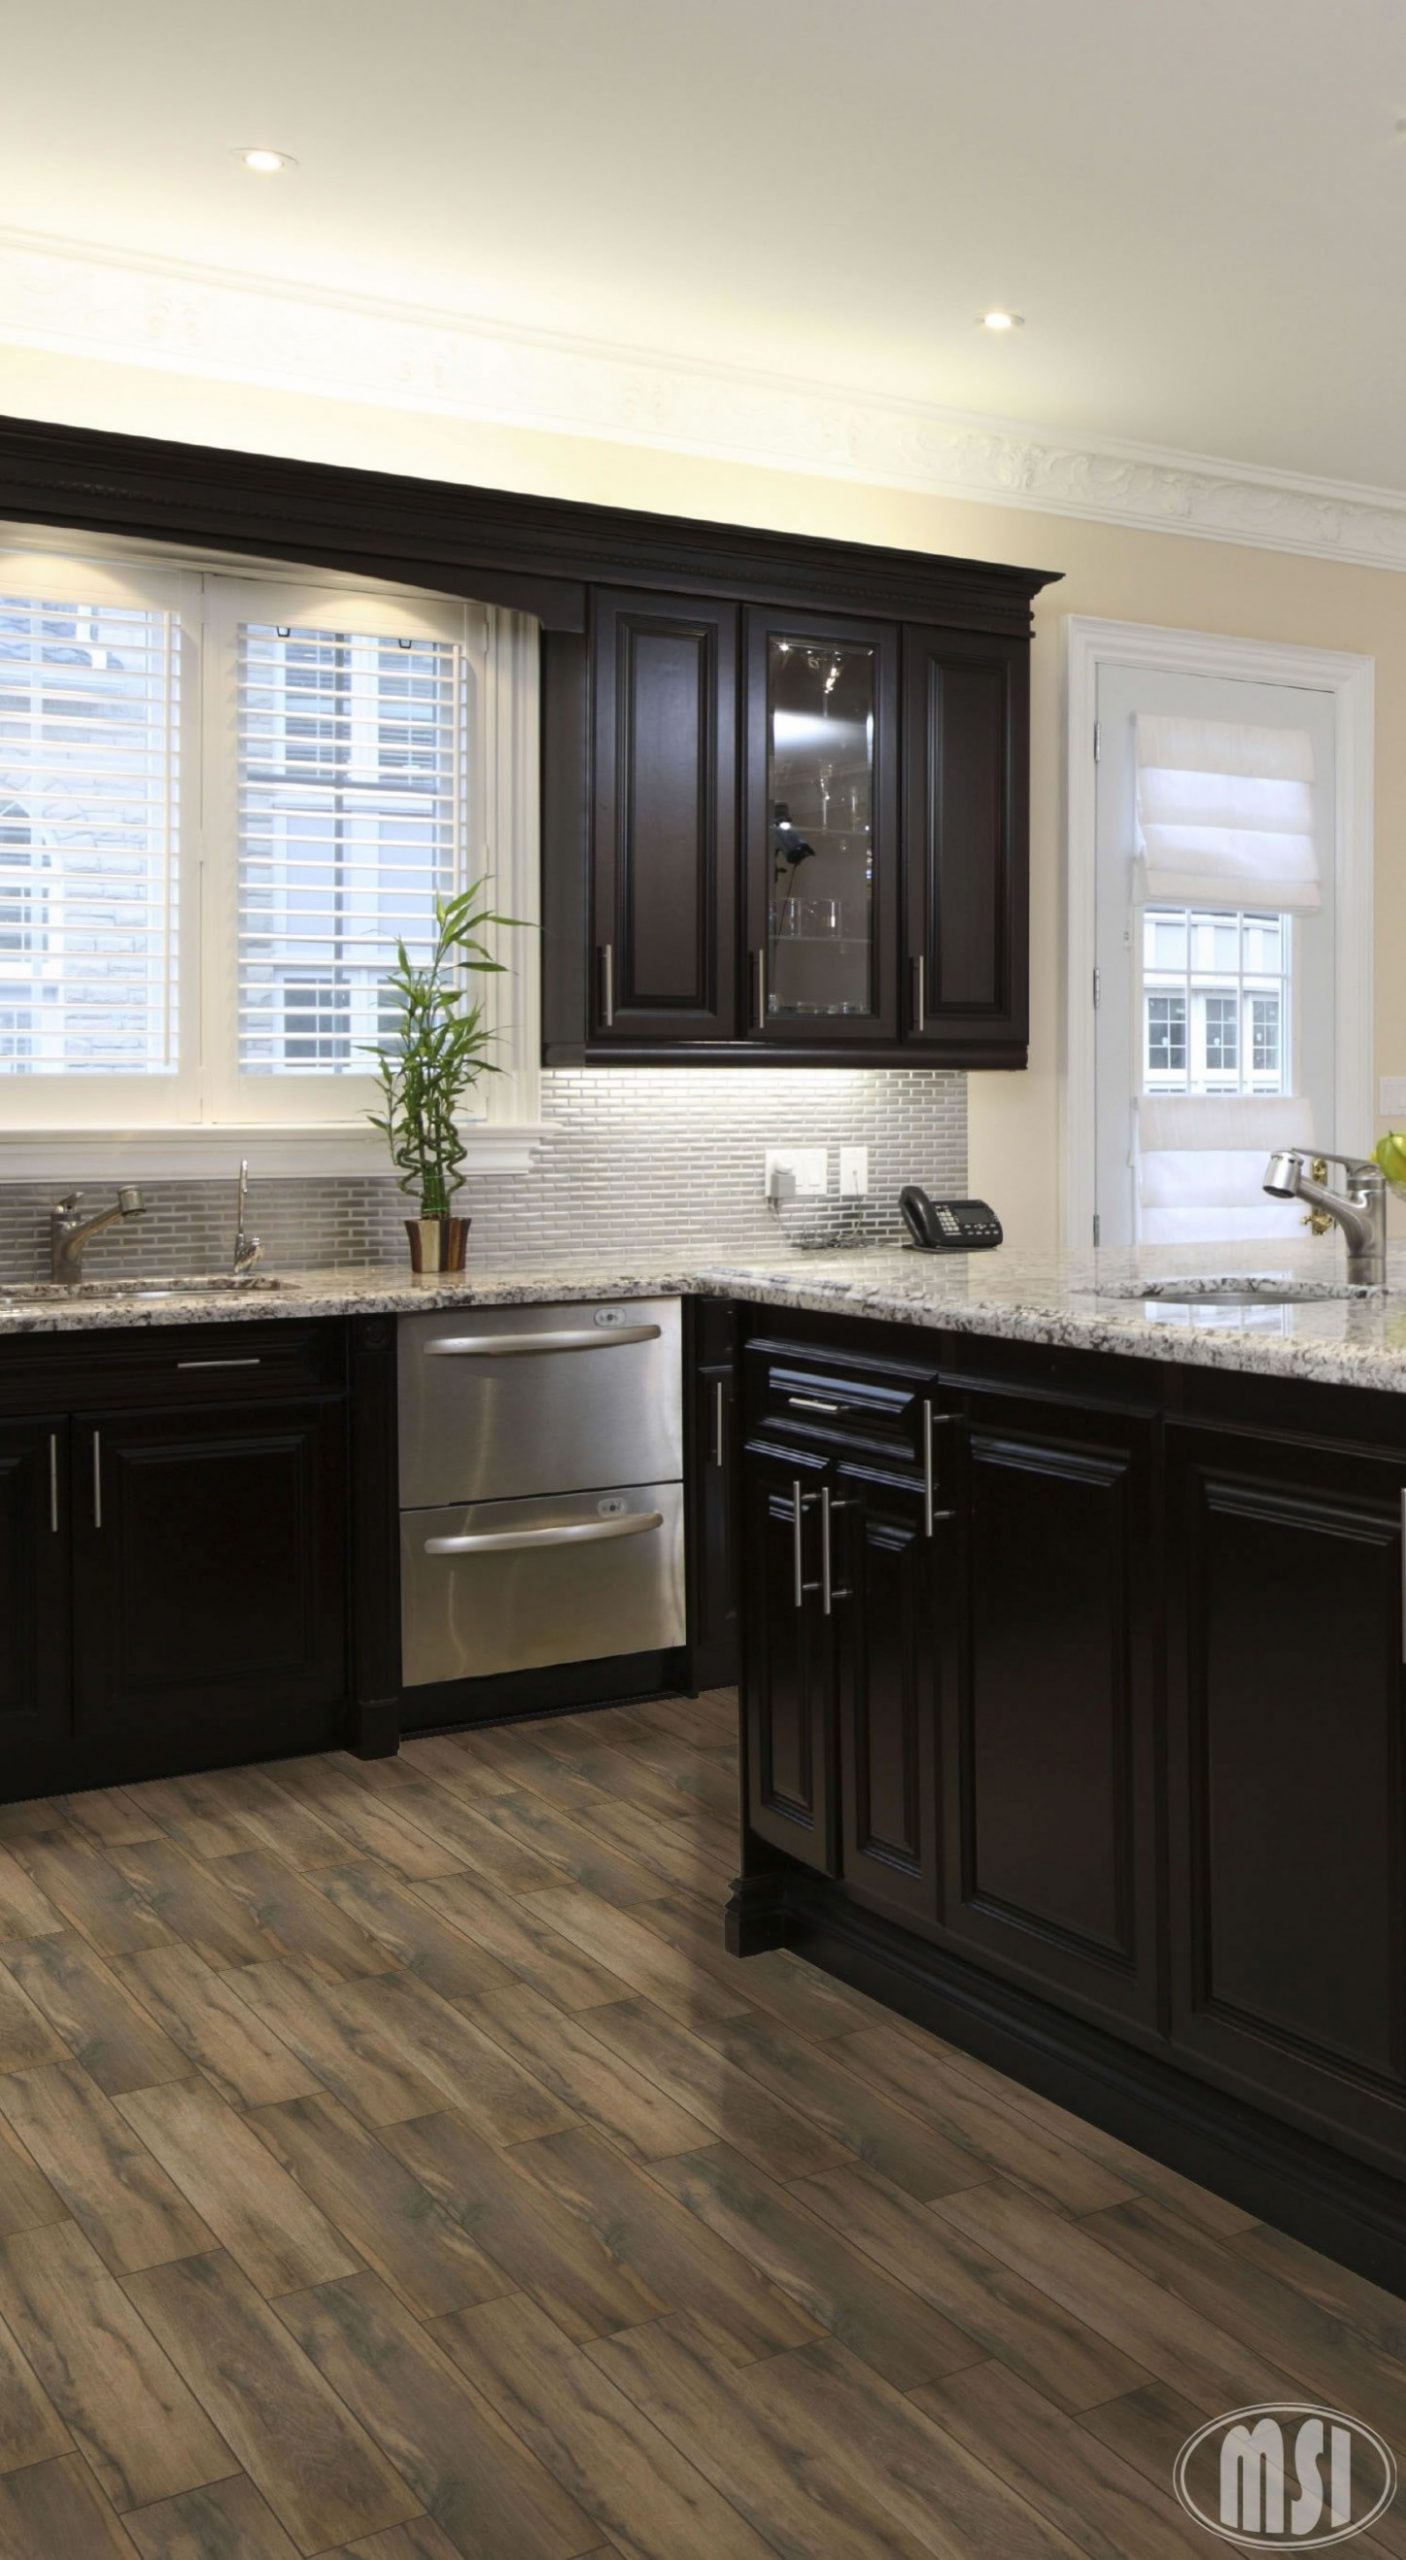 Moon White Granite Slab  Home kitchens, Kitchen remodel, Kitchen  - Kitchen Cabinets With Dark Floors